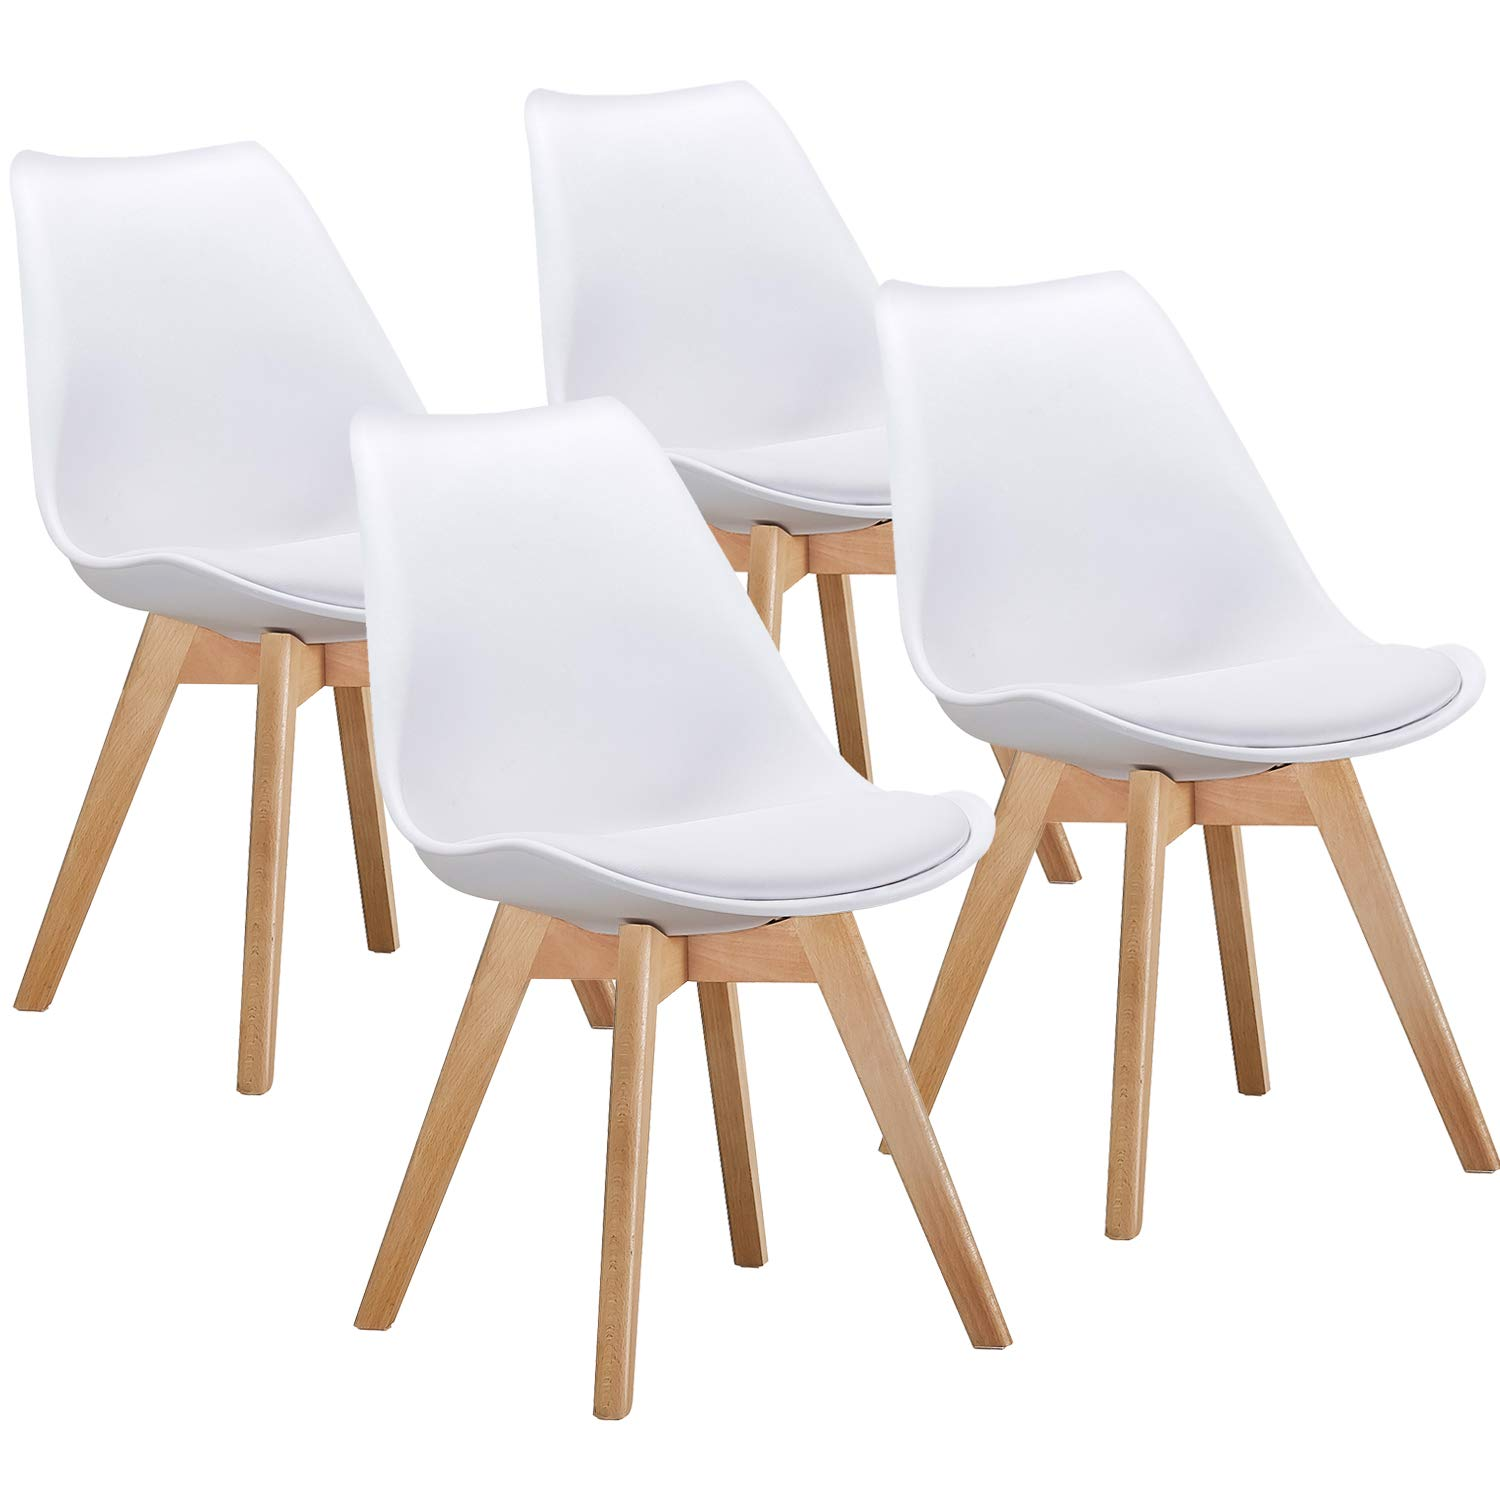 VECELO Retro Dining Side Mid Century Modern Chairs Durable Cushion with Solid Wooden Legs, Set of 4, PU White